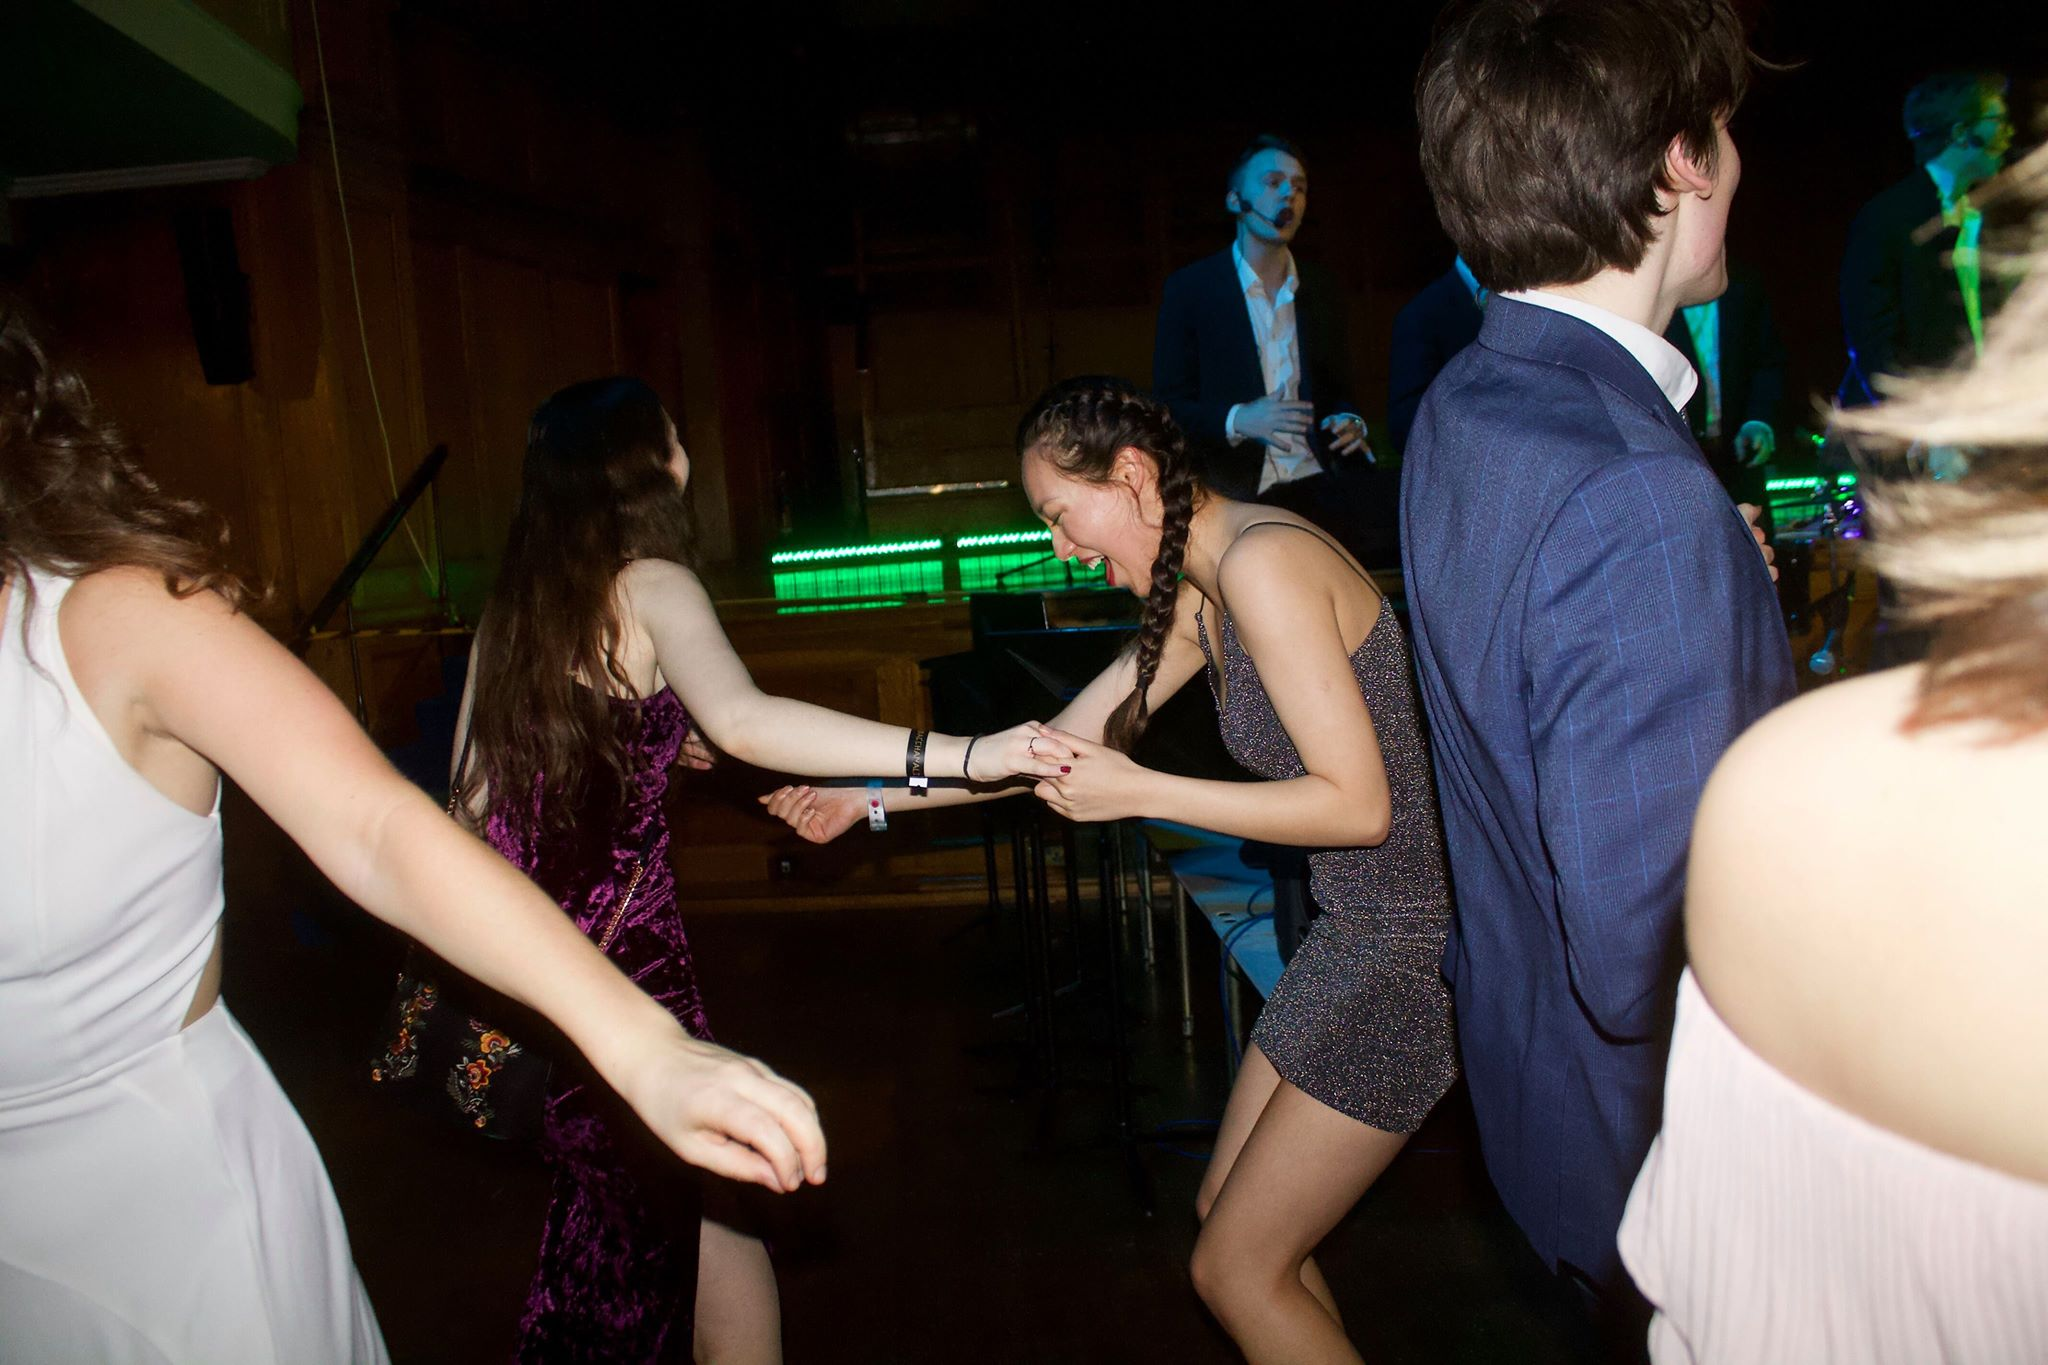 Bacchanalia: A Night of Highs and Lows